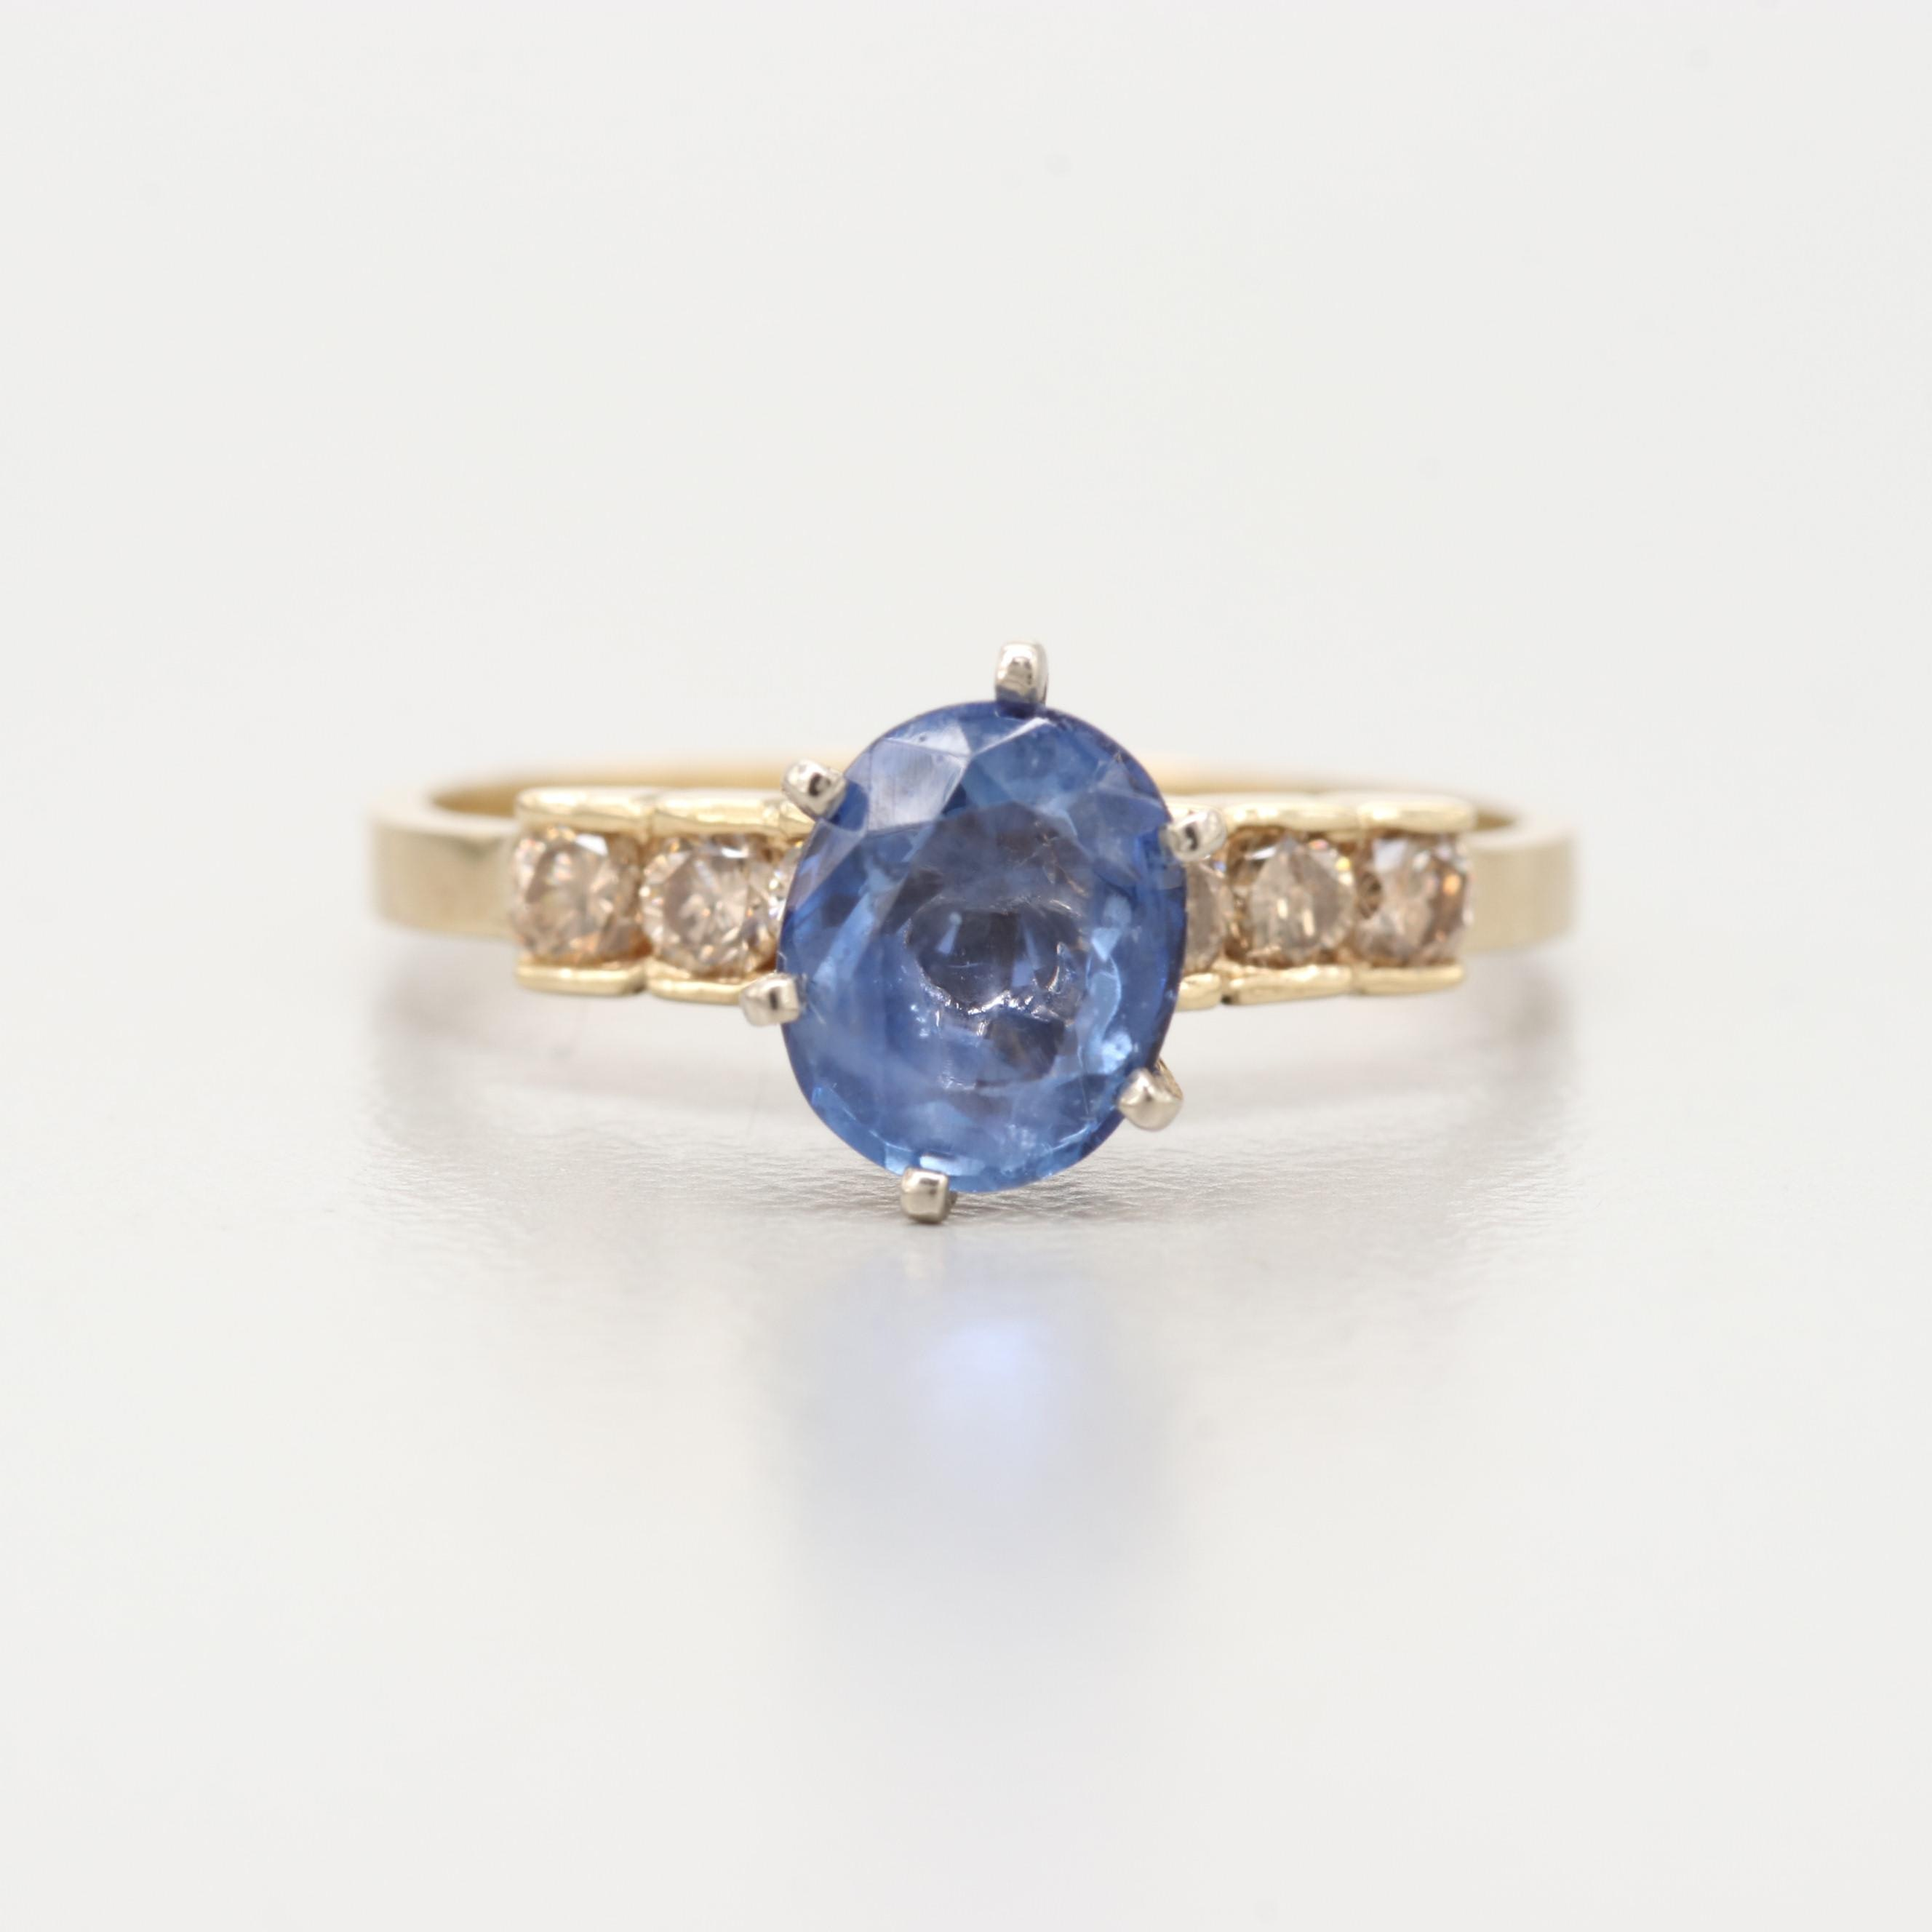 14K Yellow Gold 1.11 CT Sapphire and Diamond Ring